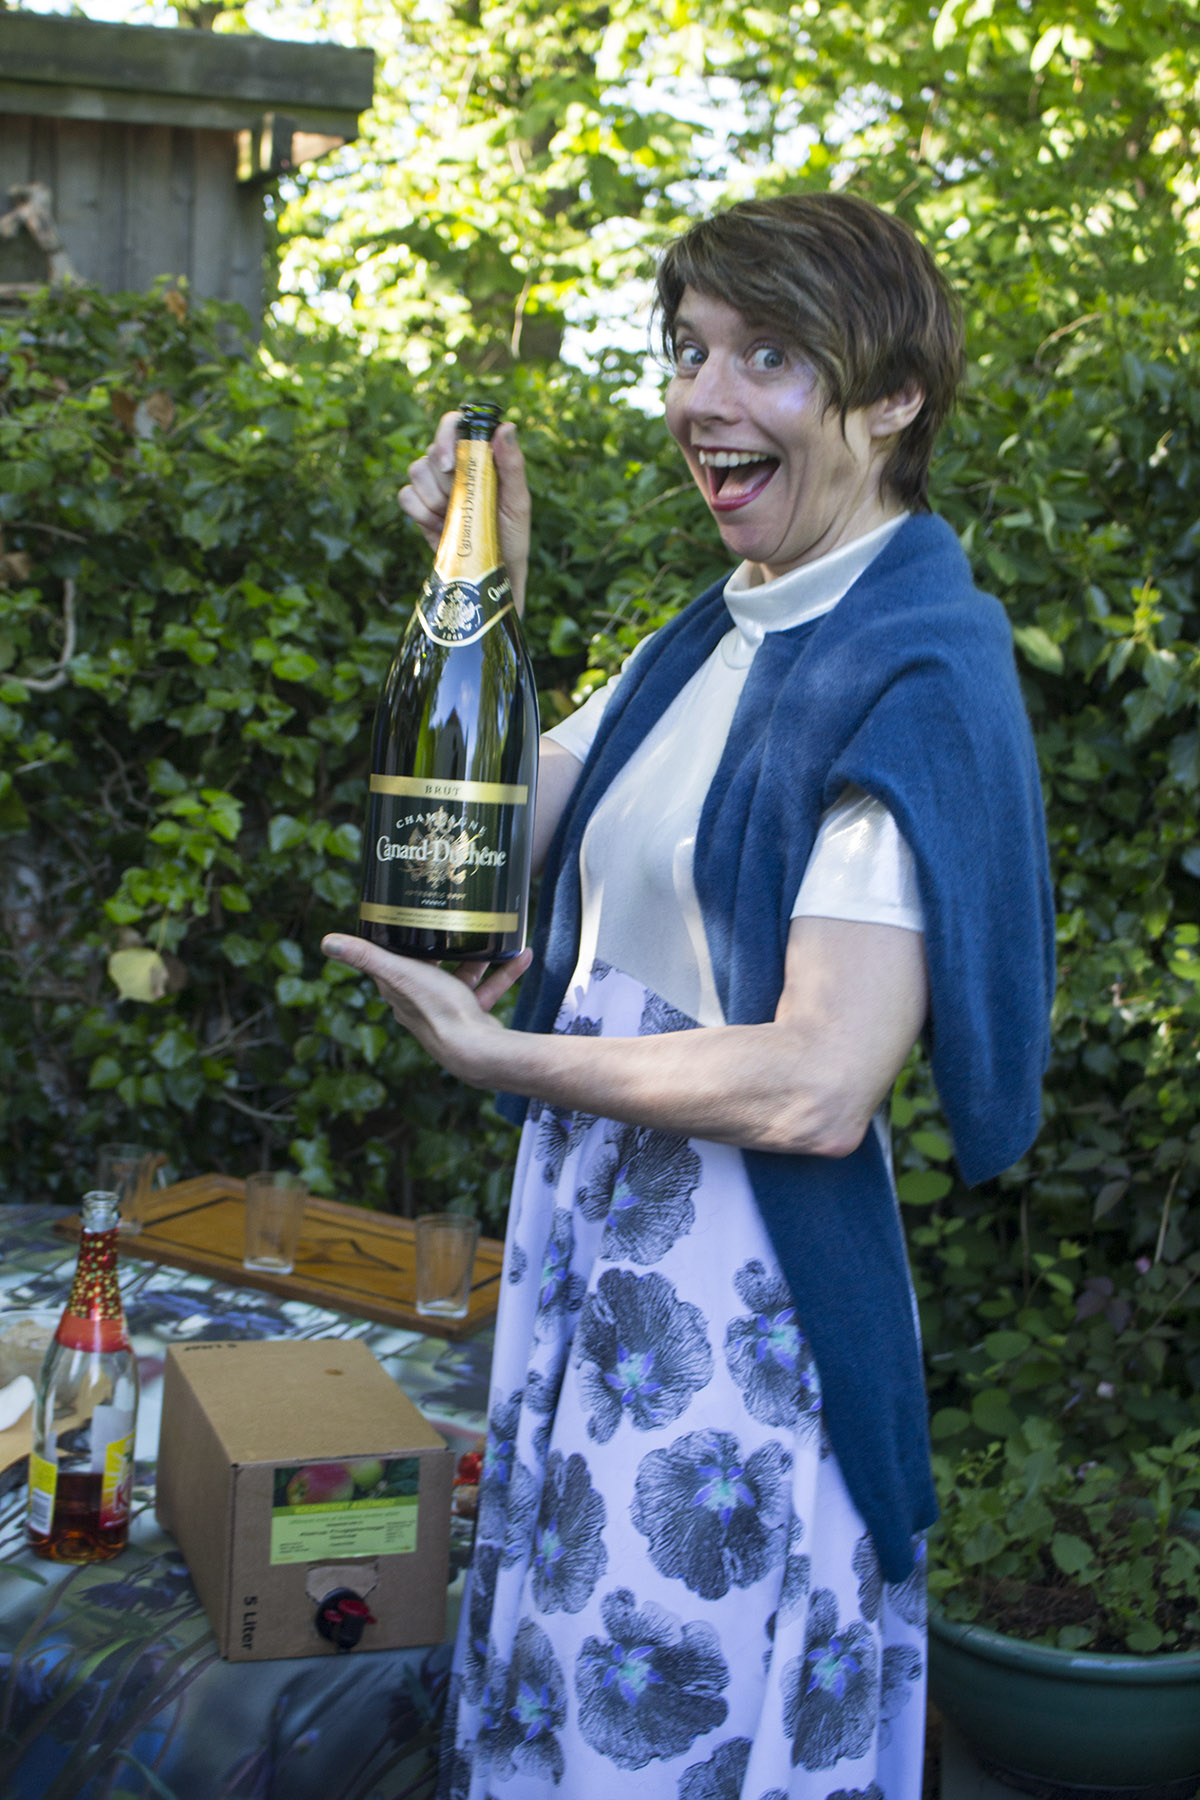 This is also me, celebrating mid-May 2017 in my mother's garden on Samsø, wearing the  Bente gown . I don't know that I'd always style it with a wool sweater and a magnum Canard-Duchêne (assume, um, not), but Denmark can be sort of chilly and who says no to bubbly?!Don't judge.